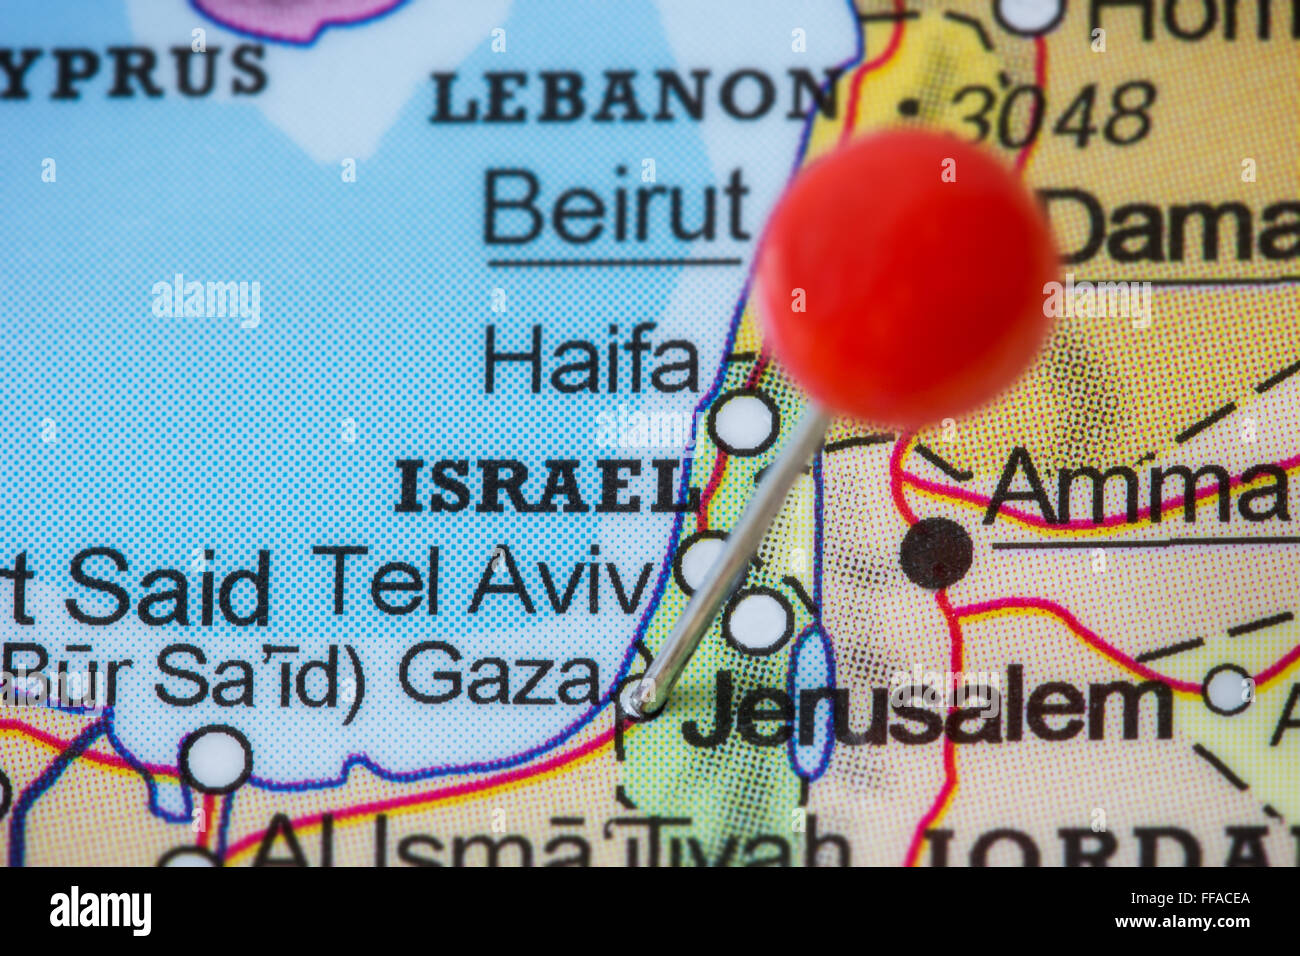 Close-up of a red pushpin in a map of Gaza, Palestine. - Stock Image